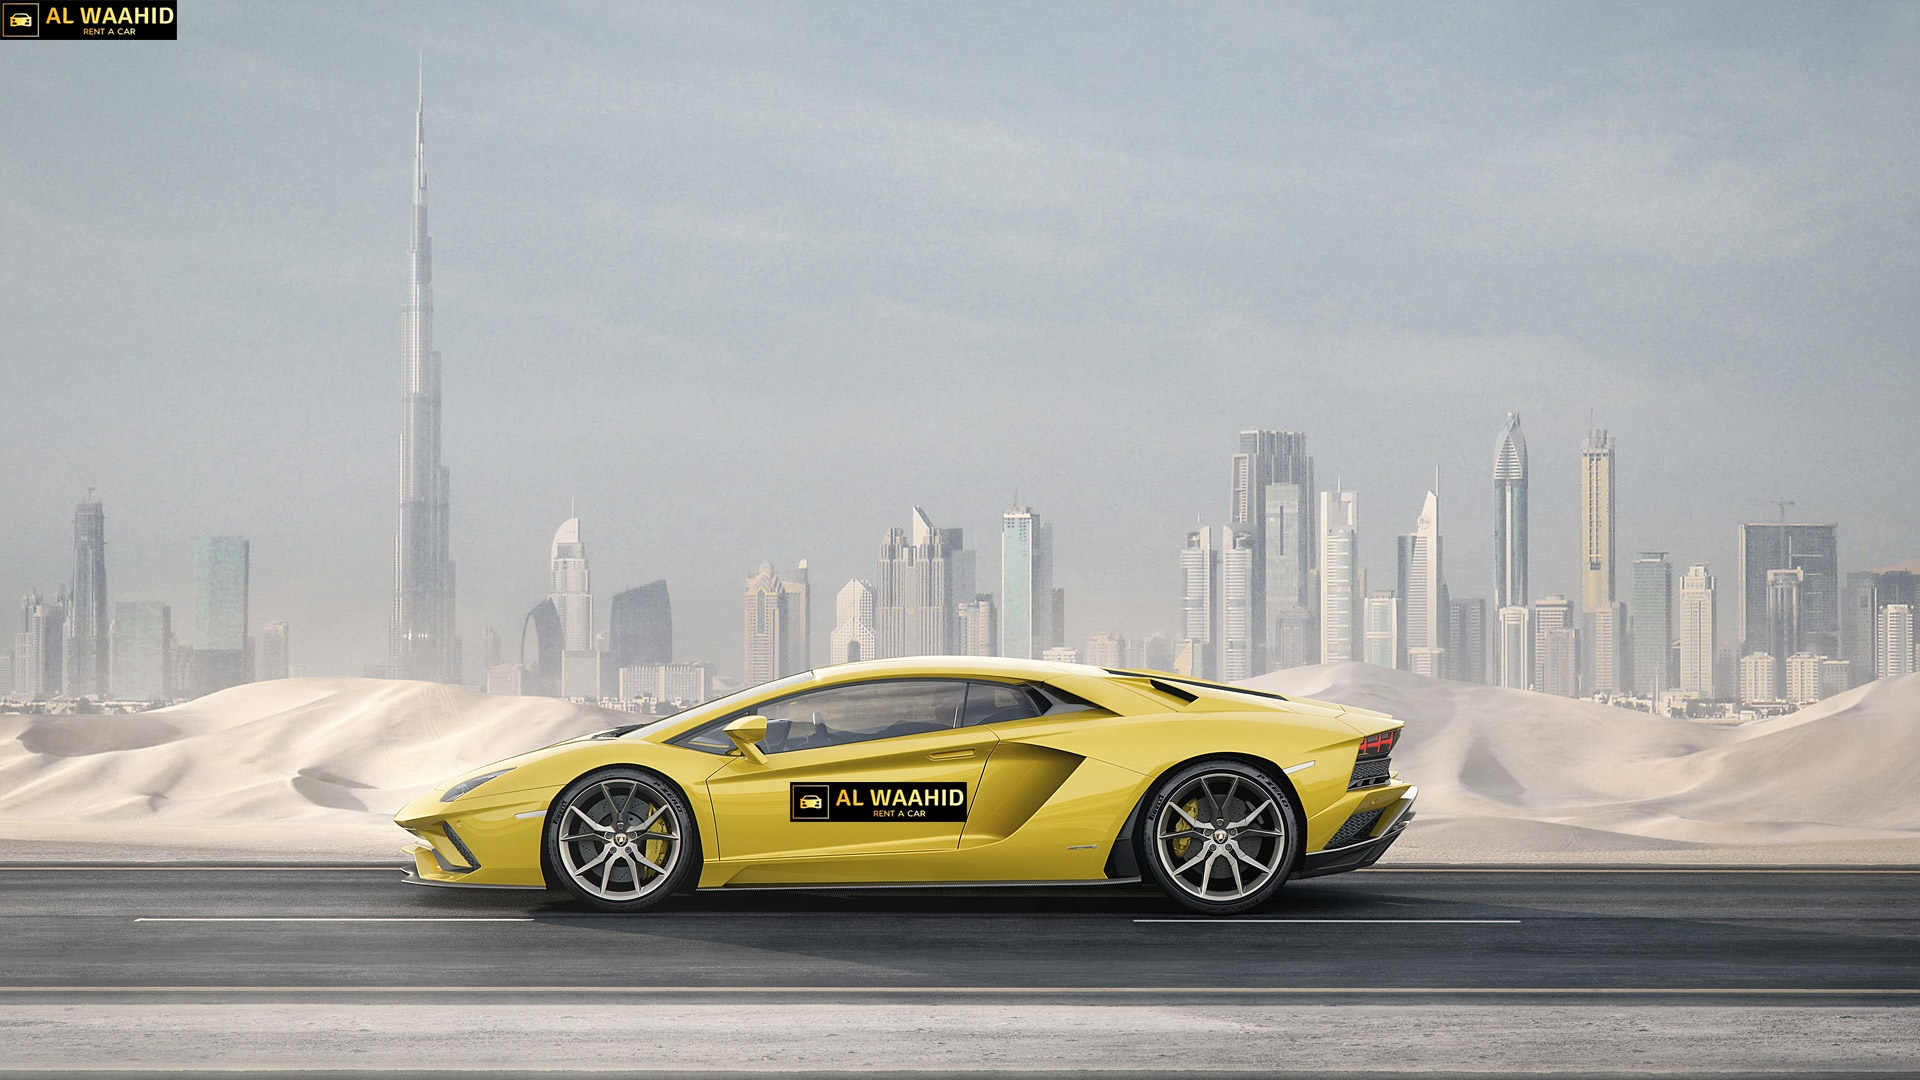 LAMBORGHINI AVENTADOR Sluxury car rental dubai alwaahid rent a car